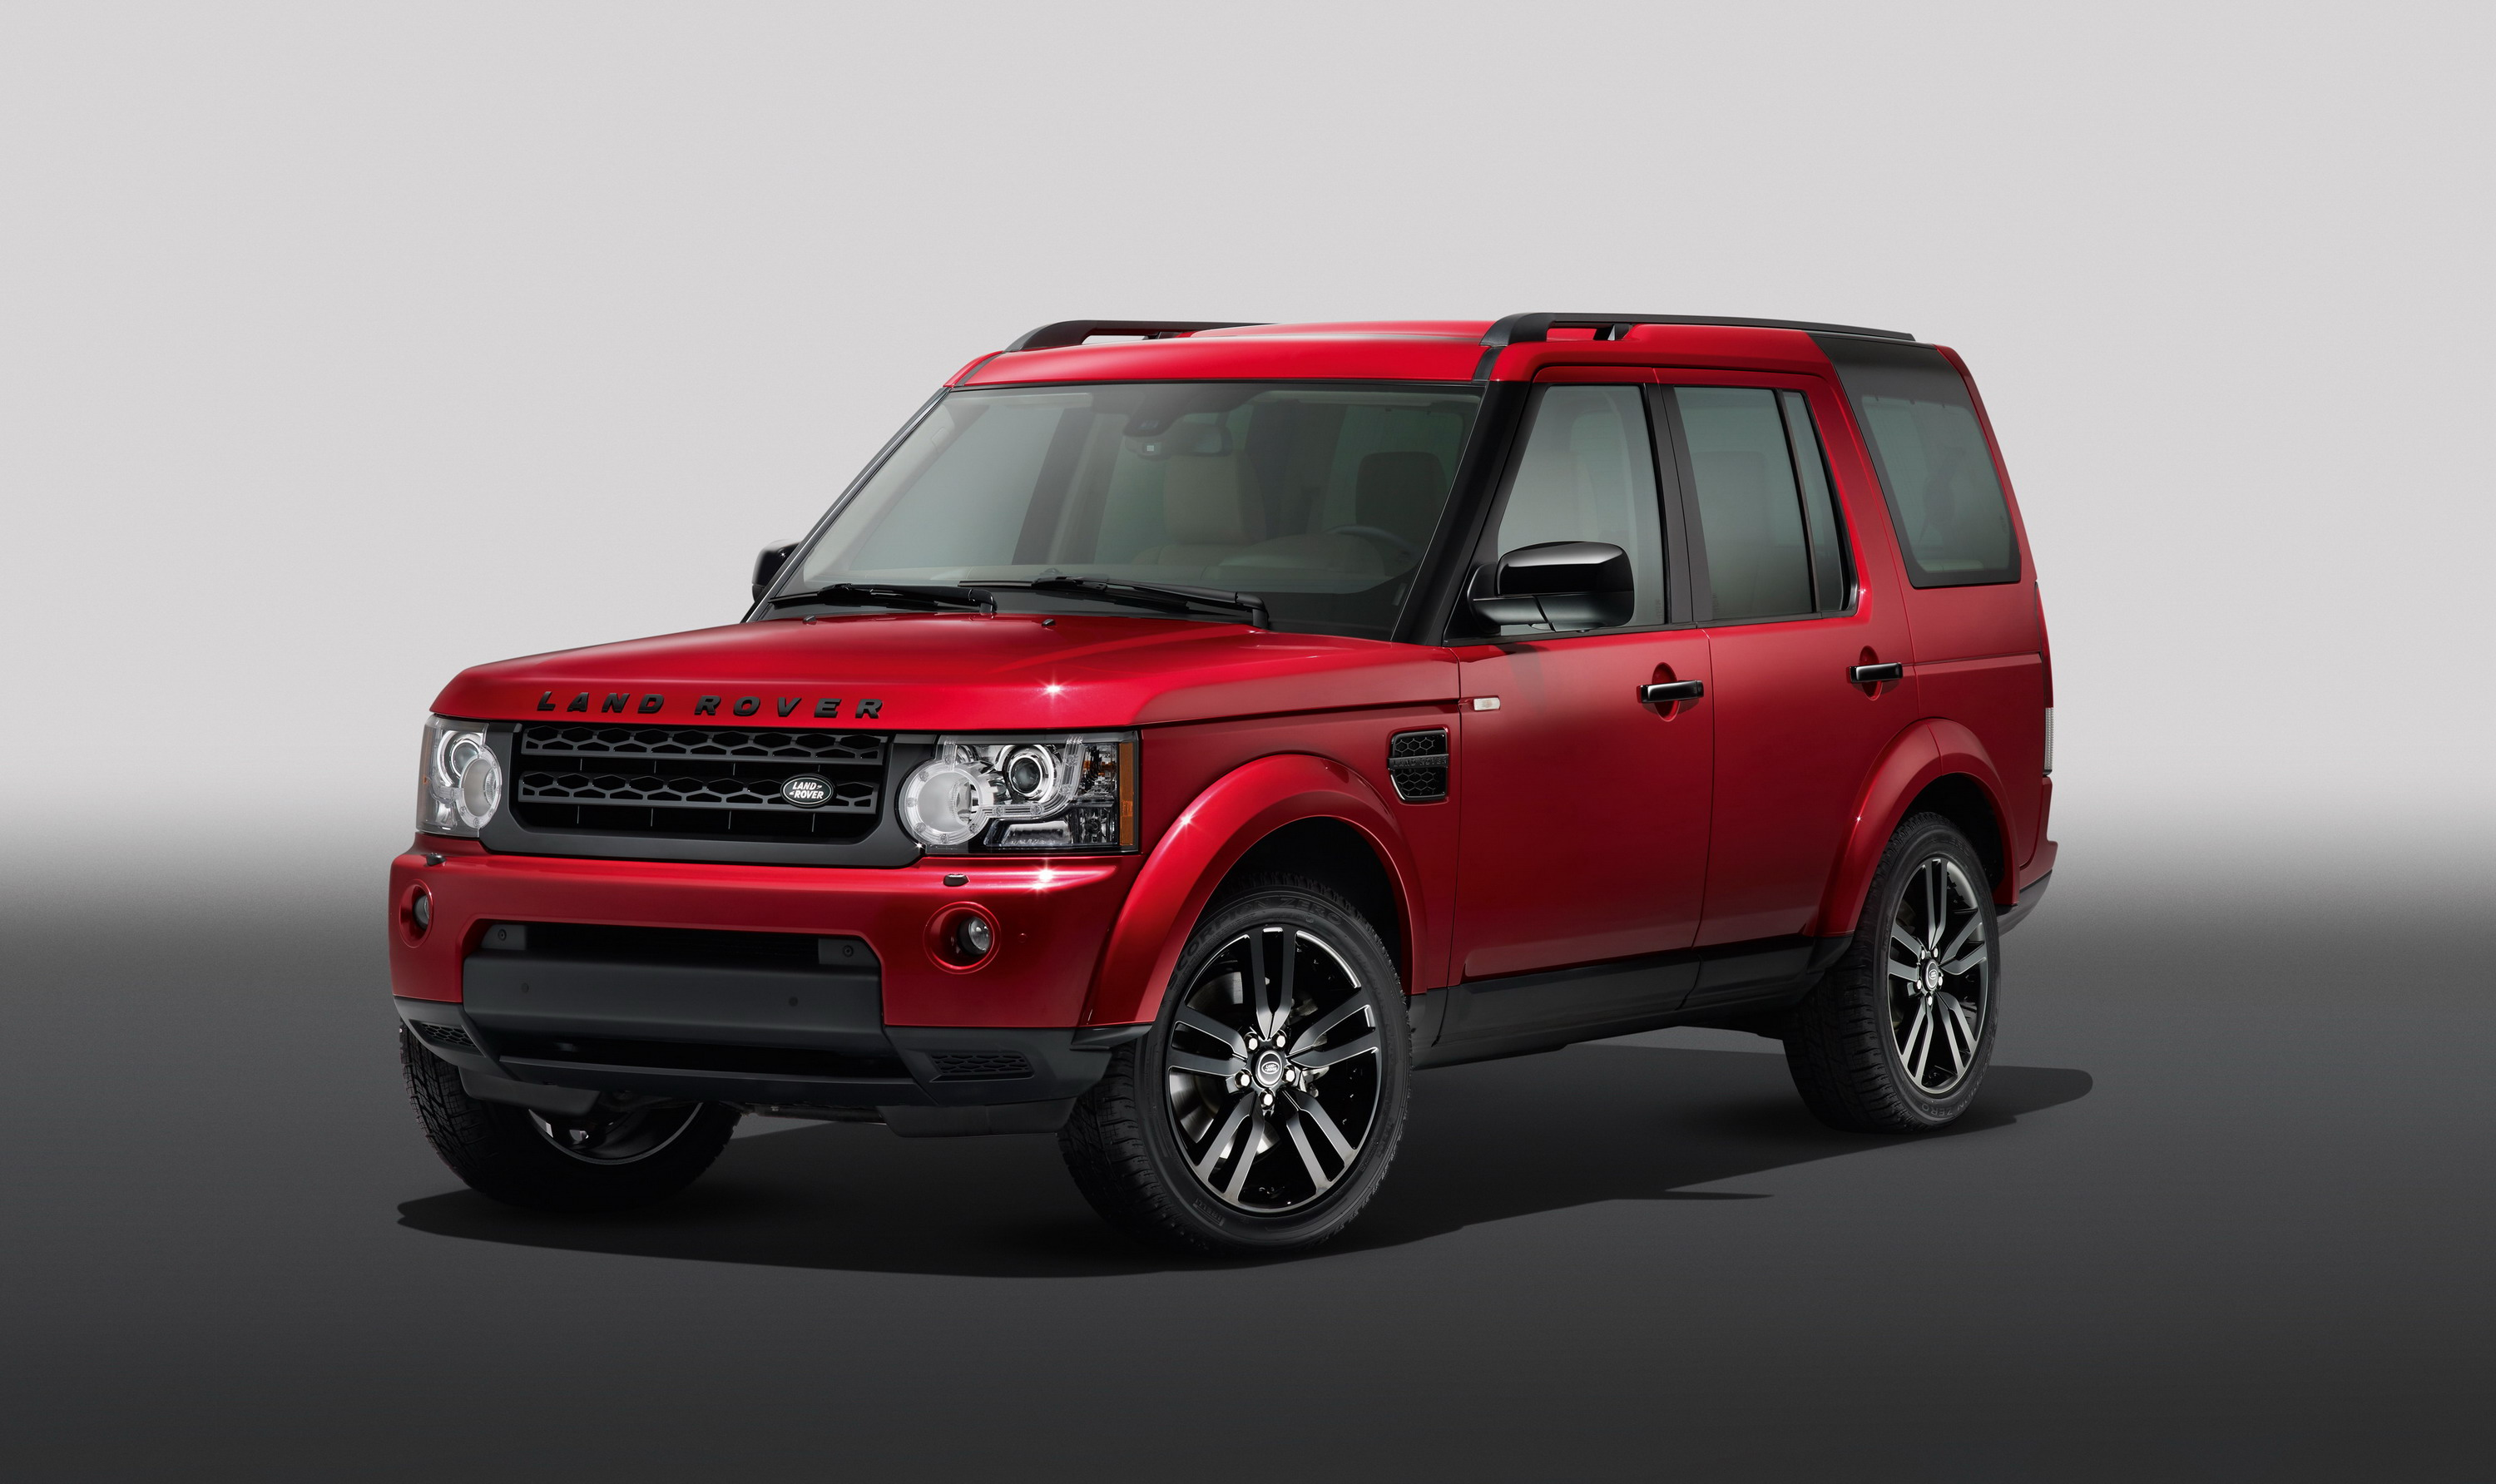 2013 Land Rover Discovery 4 Black Design Packs Review Gallery